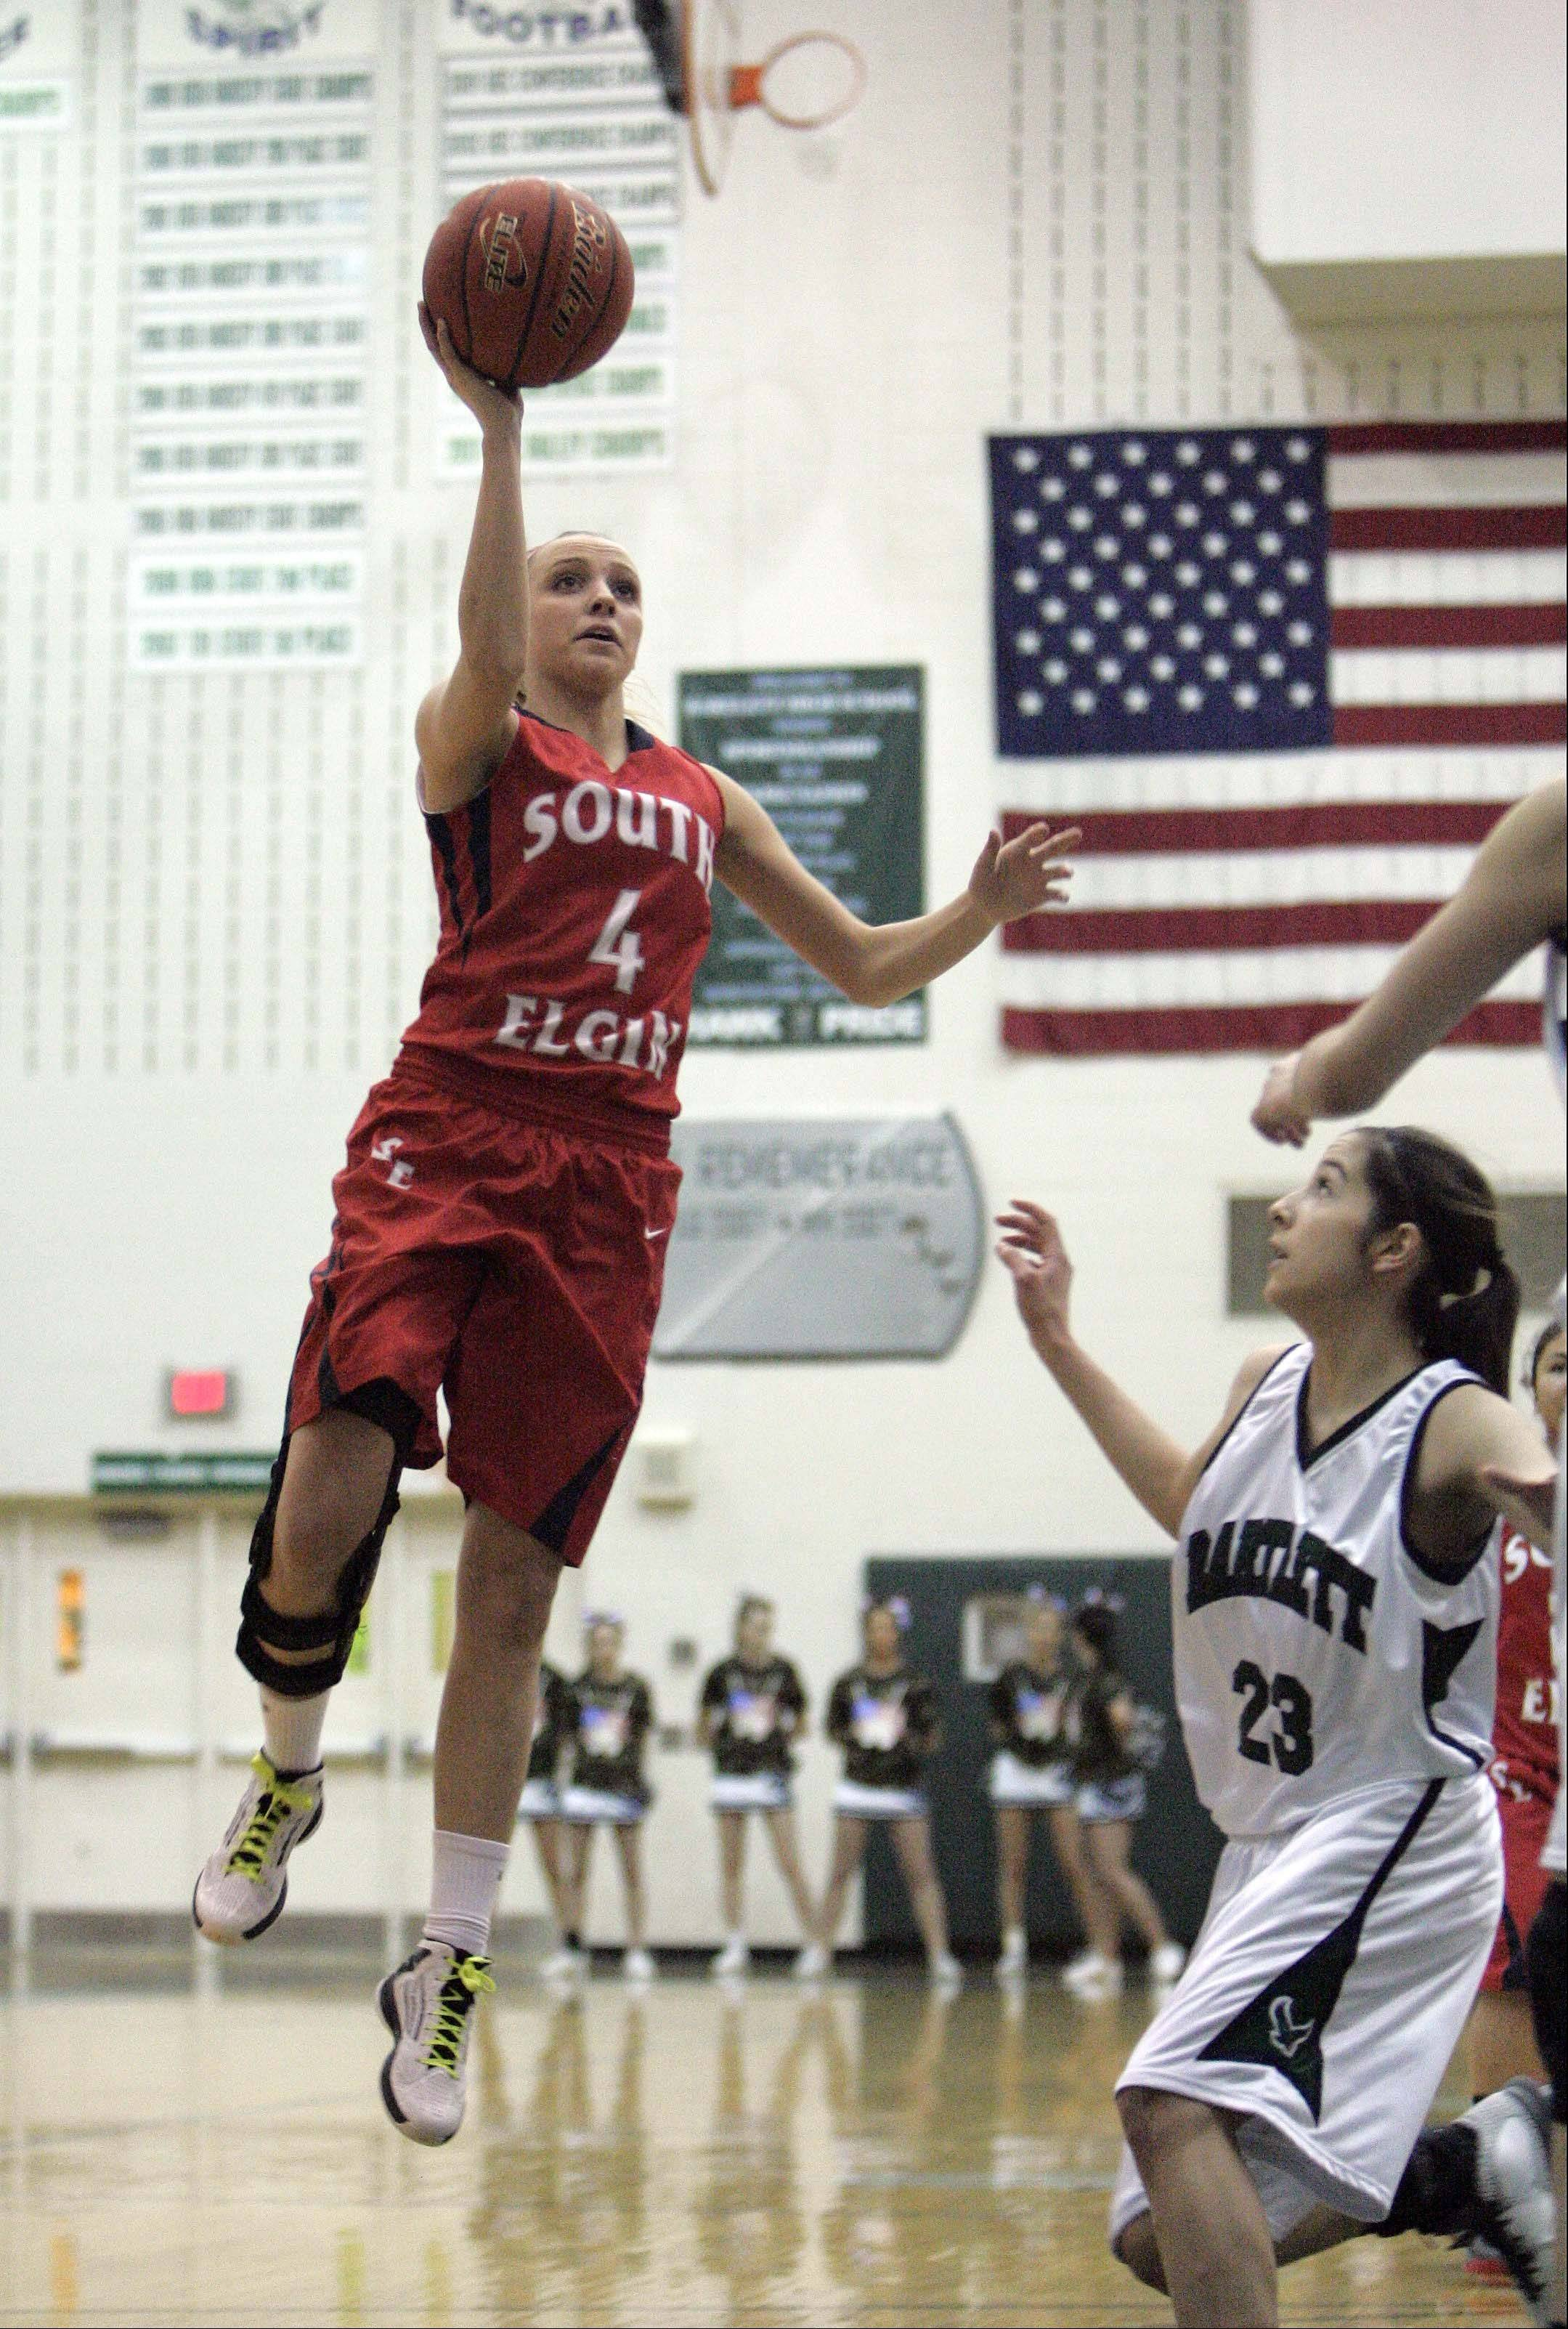 Images from the South Elgin vs Bartlett girls basketball game Saturday January 19, 2013 in Bartlett.